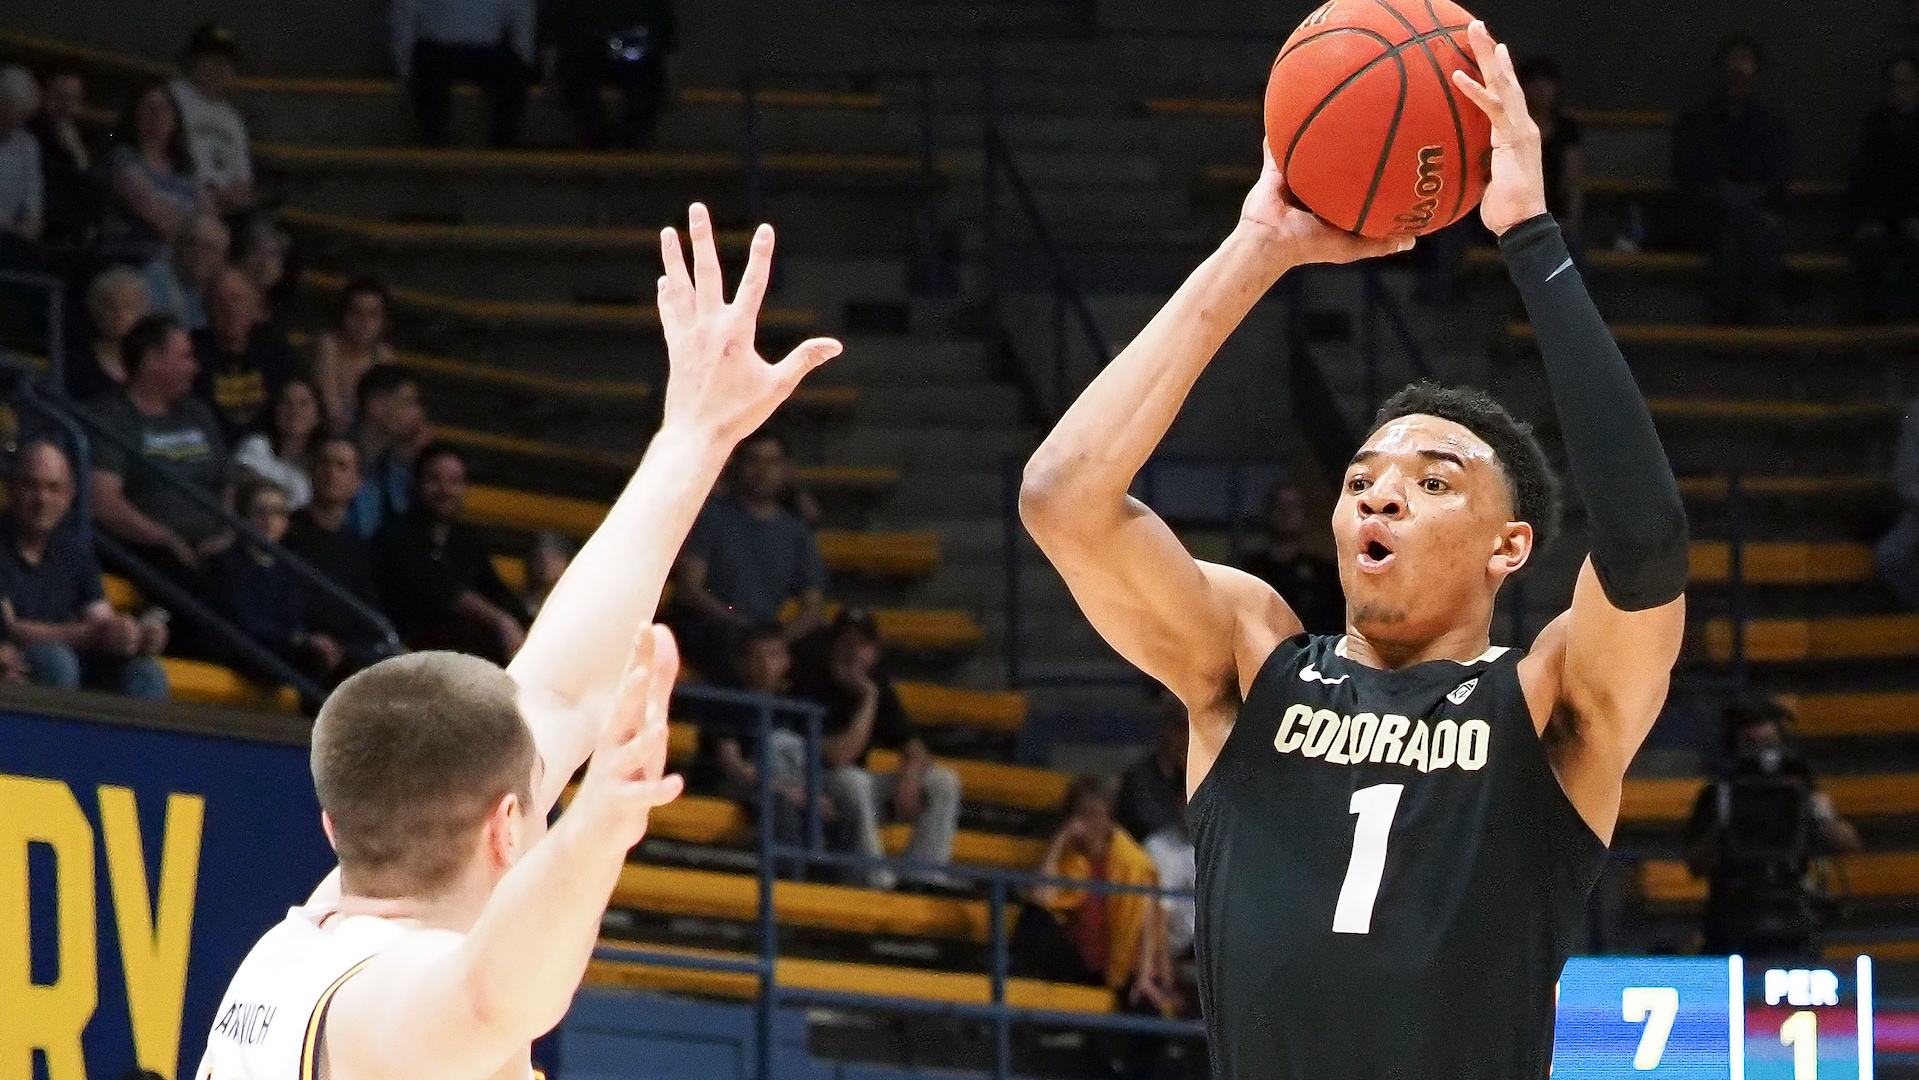 Colorado's Tyler Bey displays high basketball IQ with defense, passing